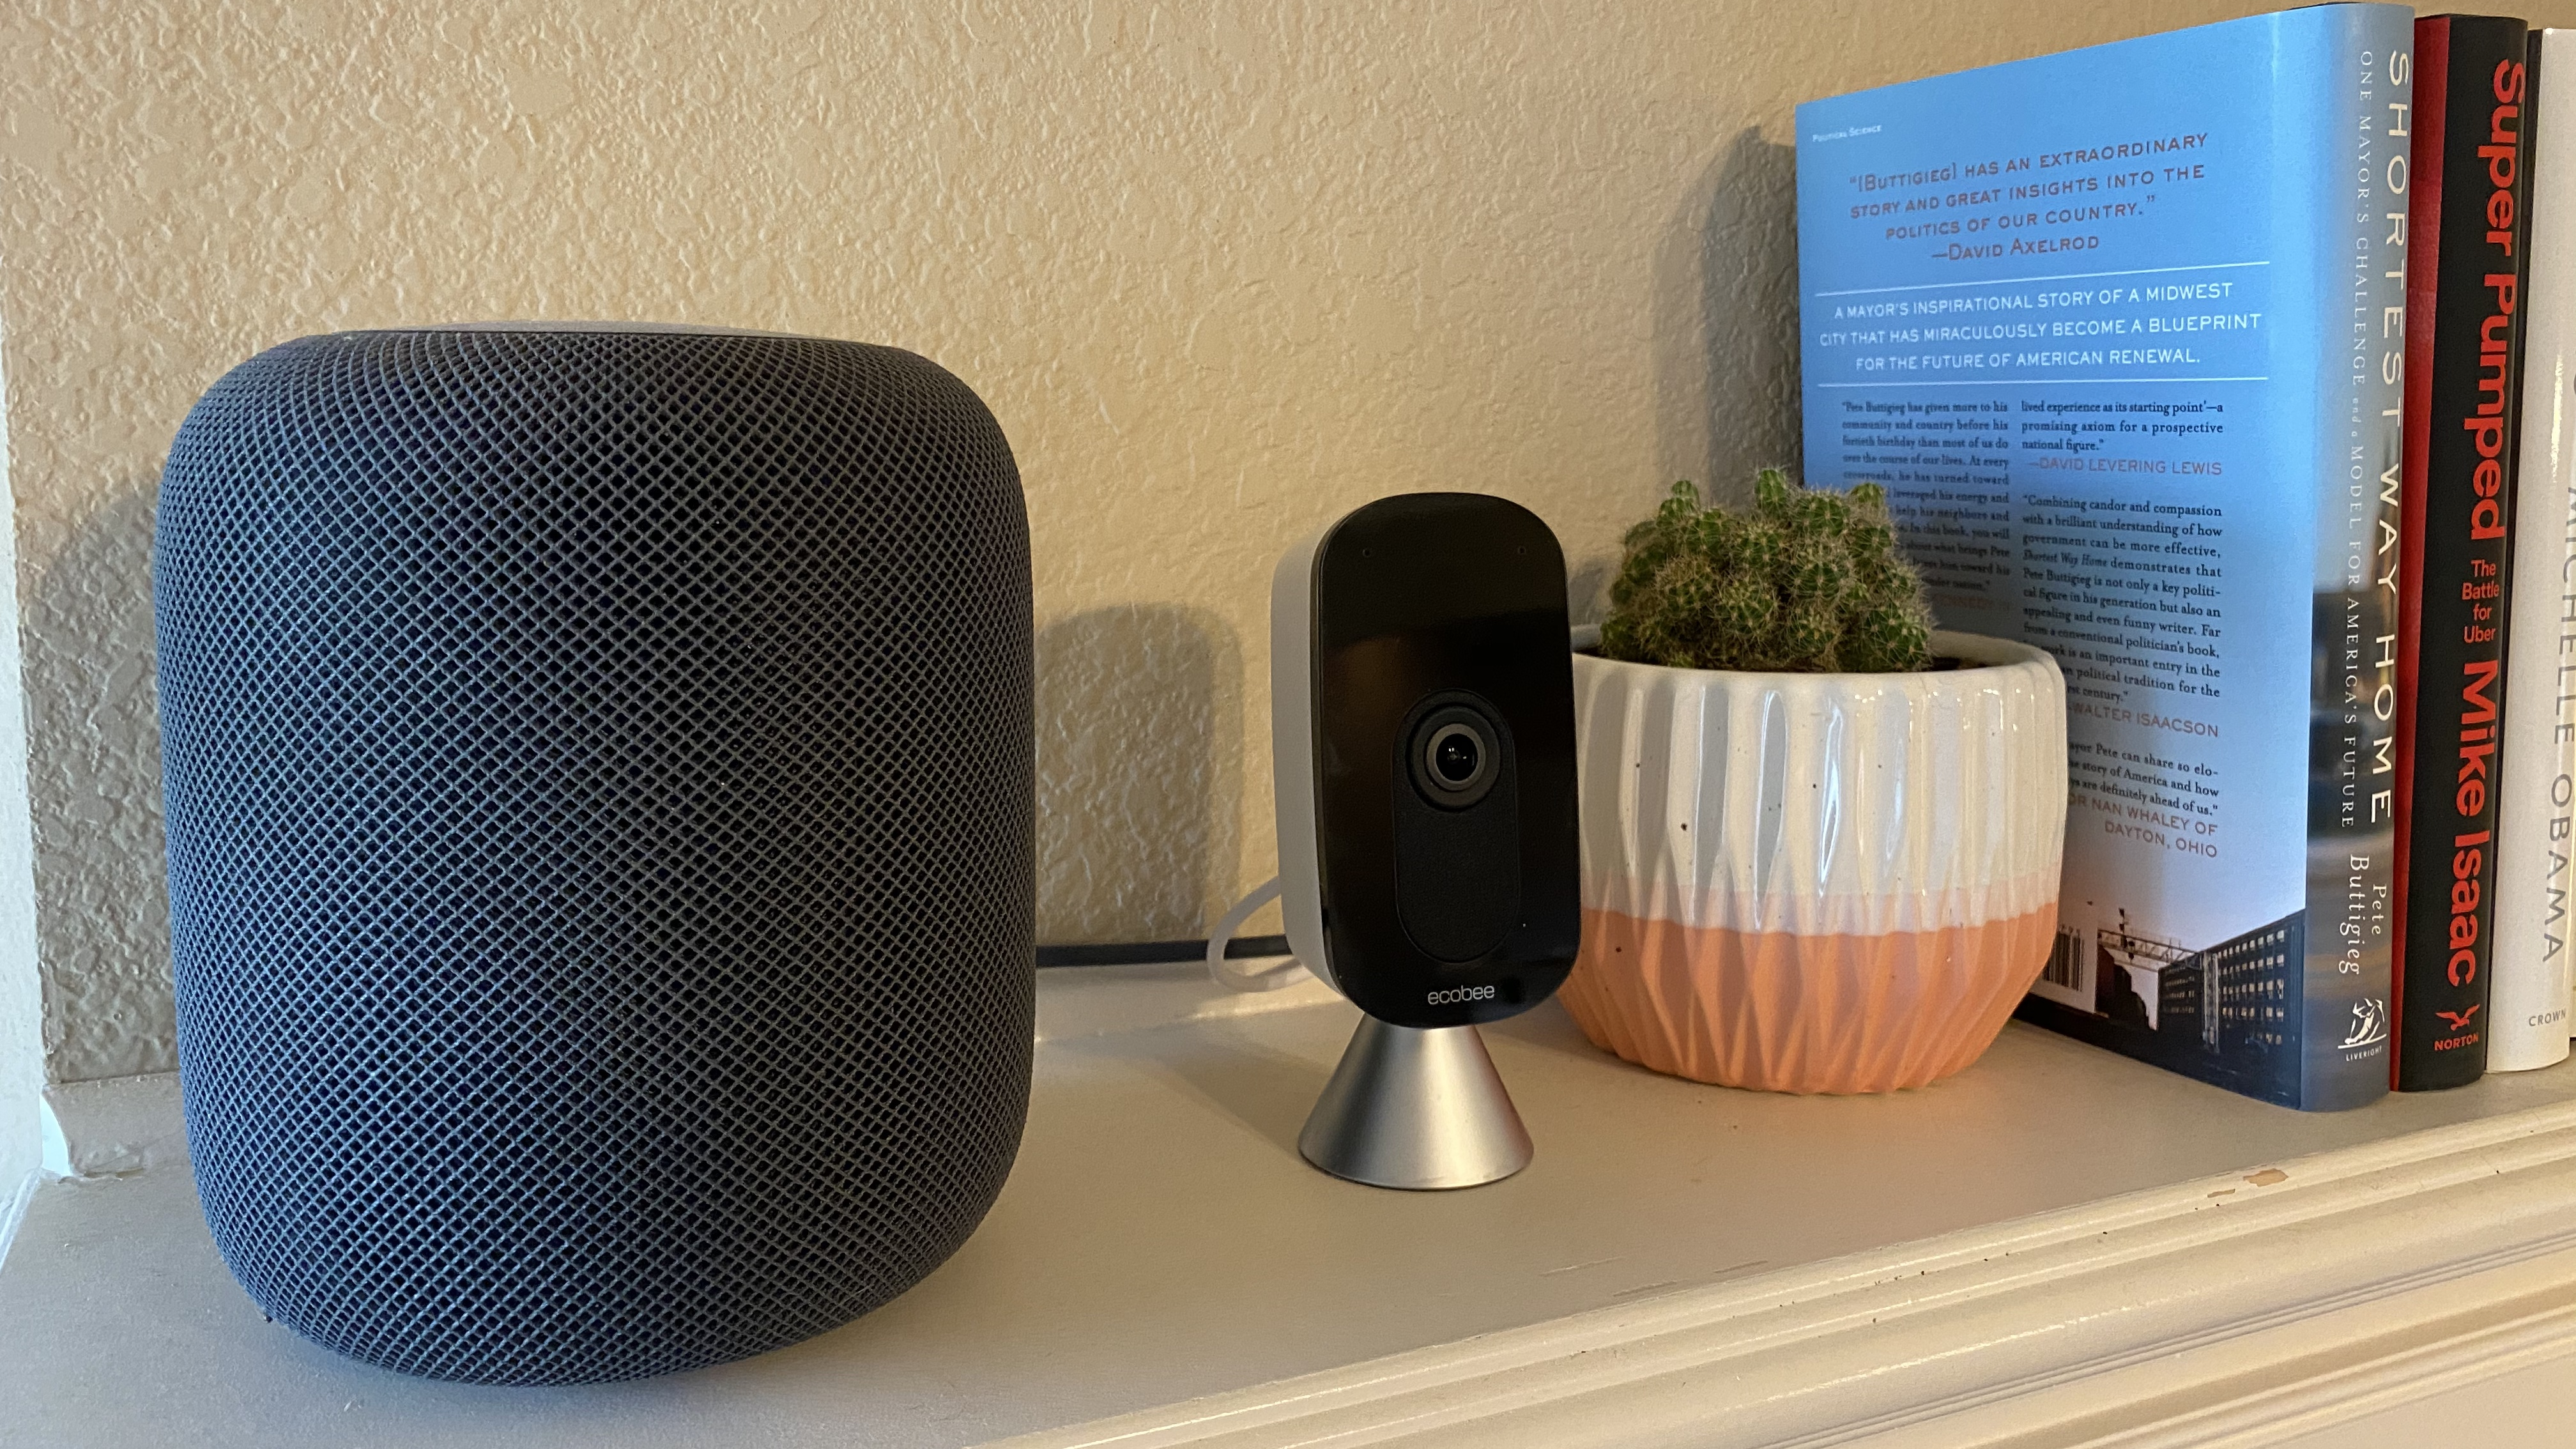 photo of Ecobee rolling out HomeKit Secure Video support for its SmartCamera with voice control image